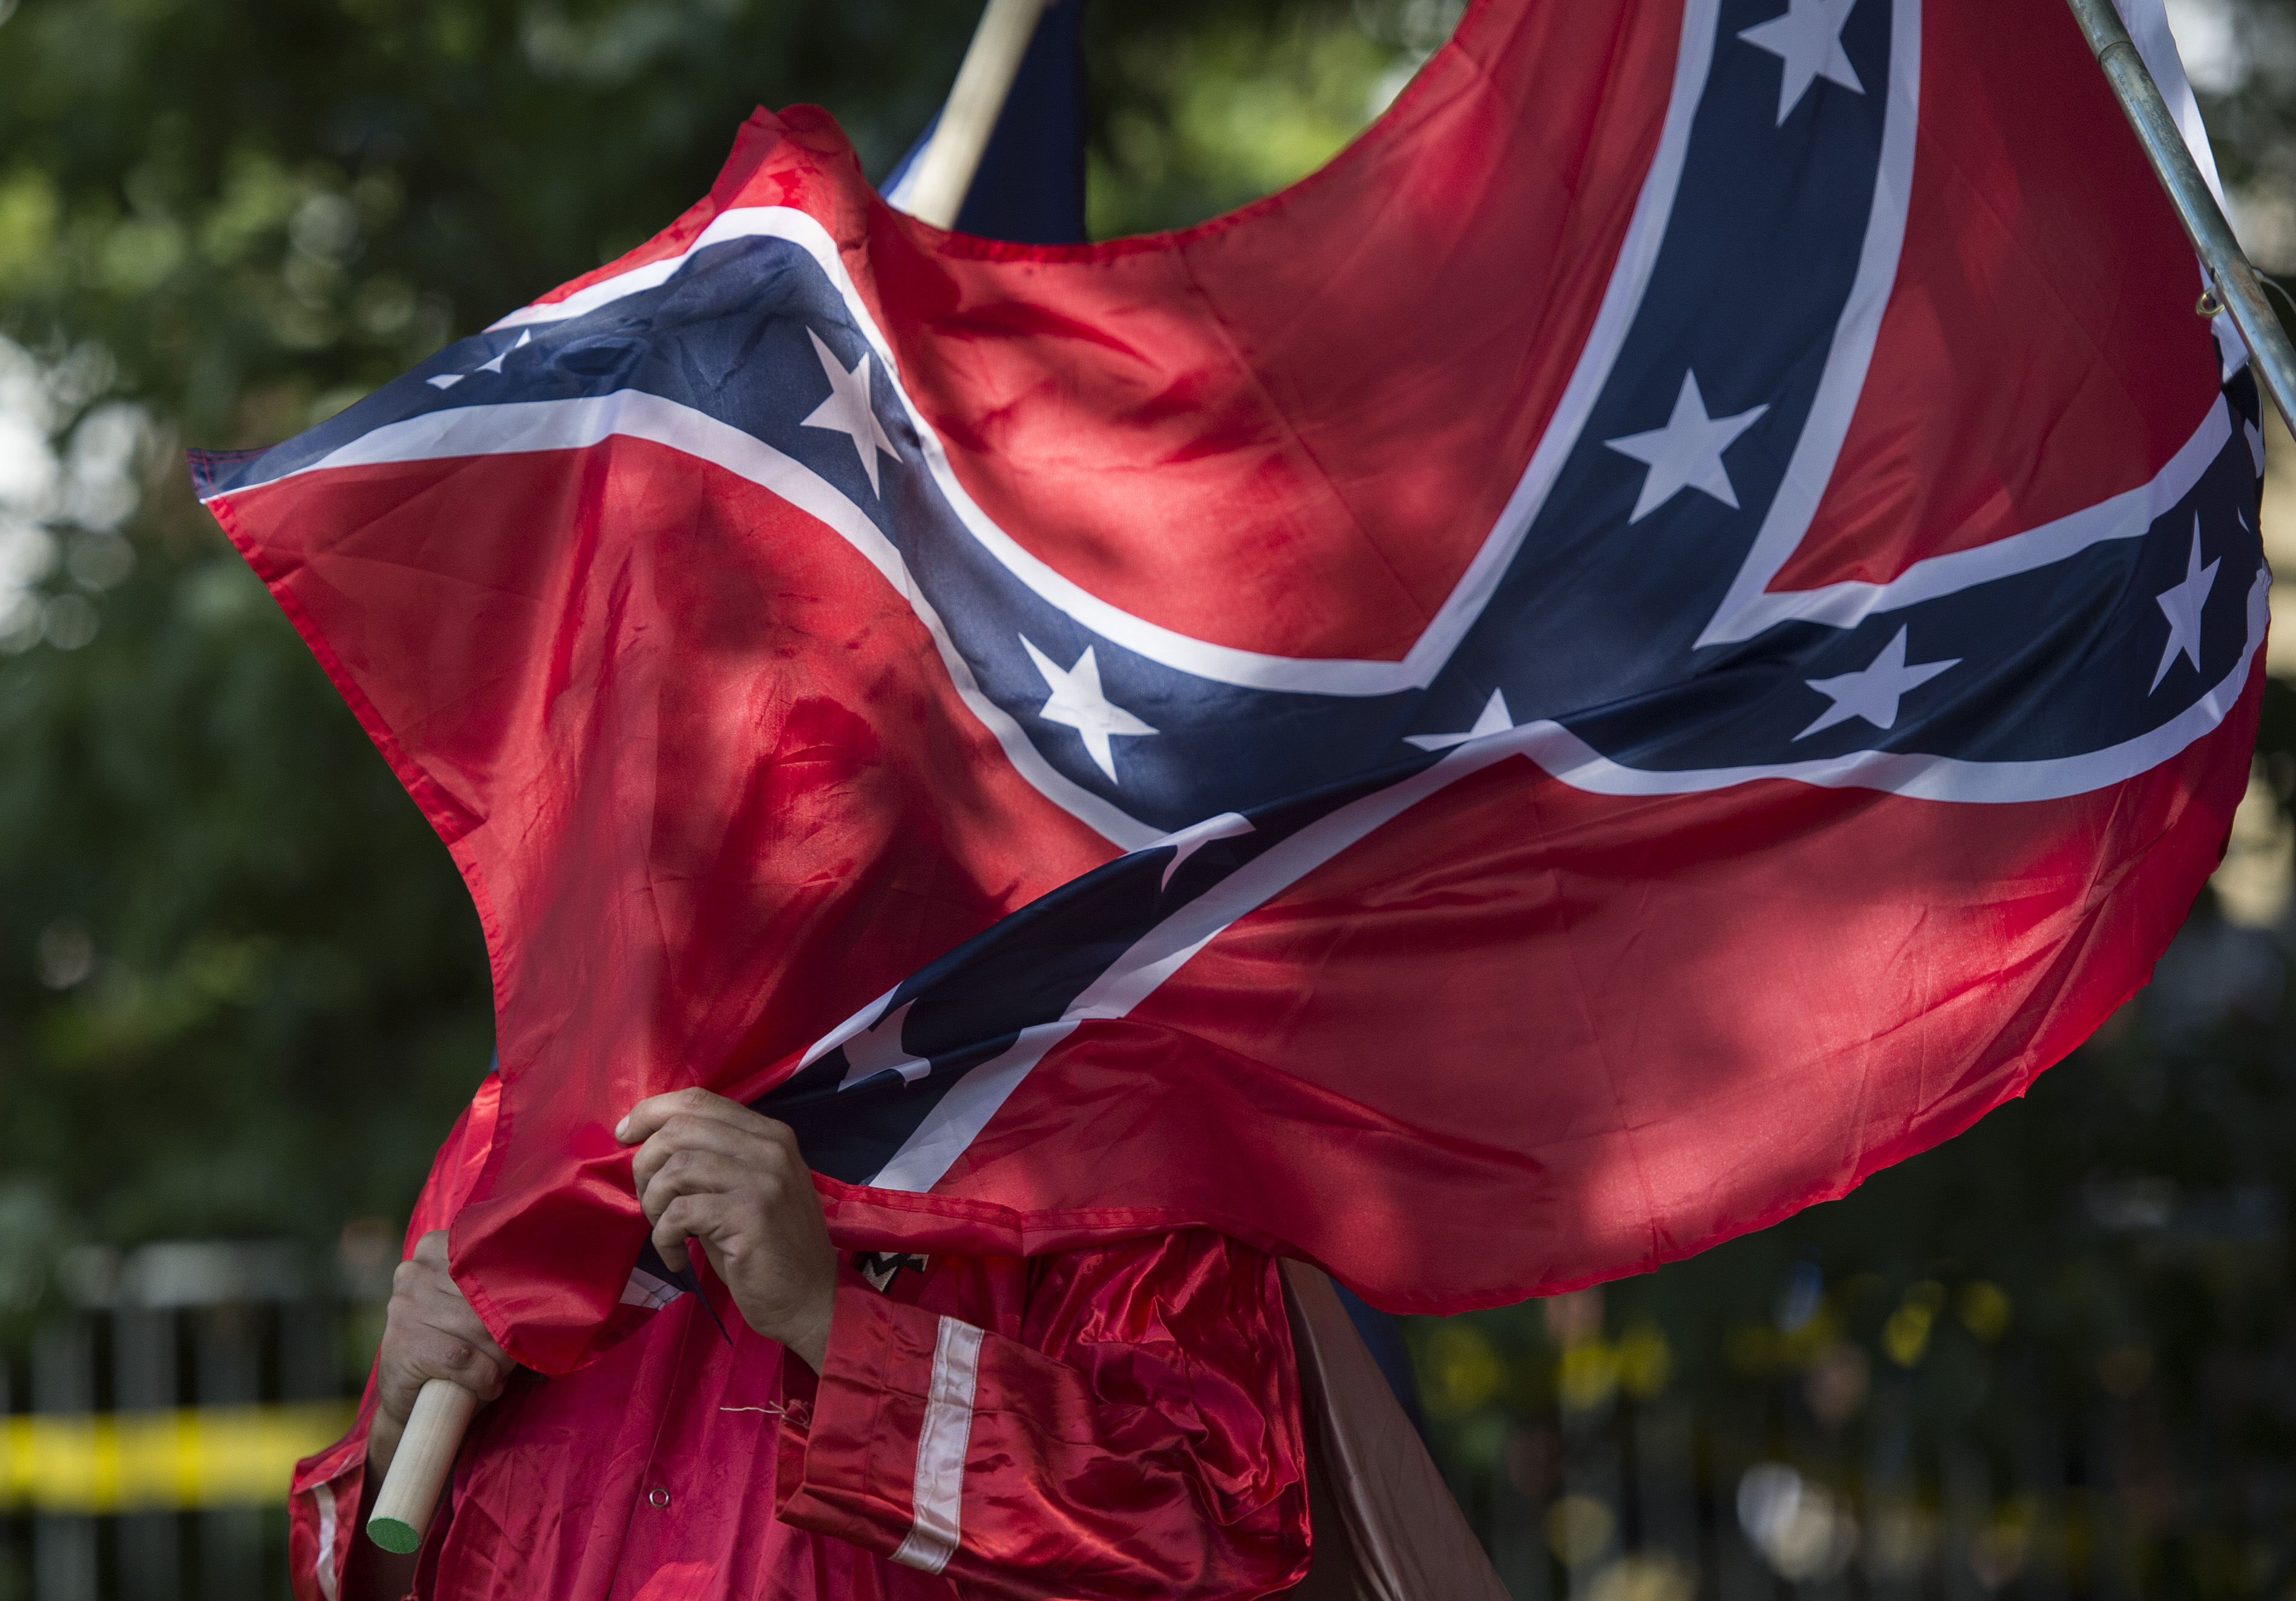 A member of the Ku Klux Klan holds a Confederate flag over his face during a rally, calling for the protection of Southern Confederate monuments, in Charlottesville, Virginia on July 8, 2017.The afternoon rally in this quiet university town has been authorized by officials in Virginia and stirred heated debate in America, where critics say the far right has been energized by Donald Trump's election to the presidency. / AFP PHOTO / ANDREW CABALLERO-REYNOLDS (Photo credit should read ANDREW CABALLERO-REYNOLDS/AFP/Getty Images)